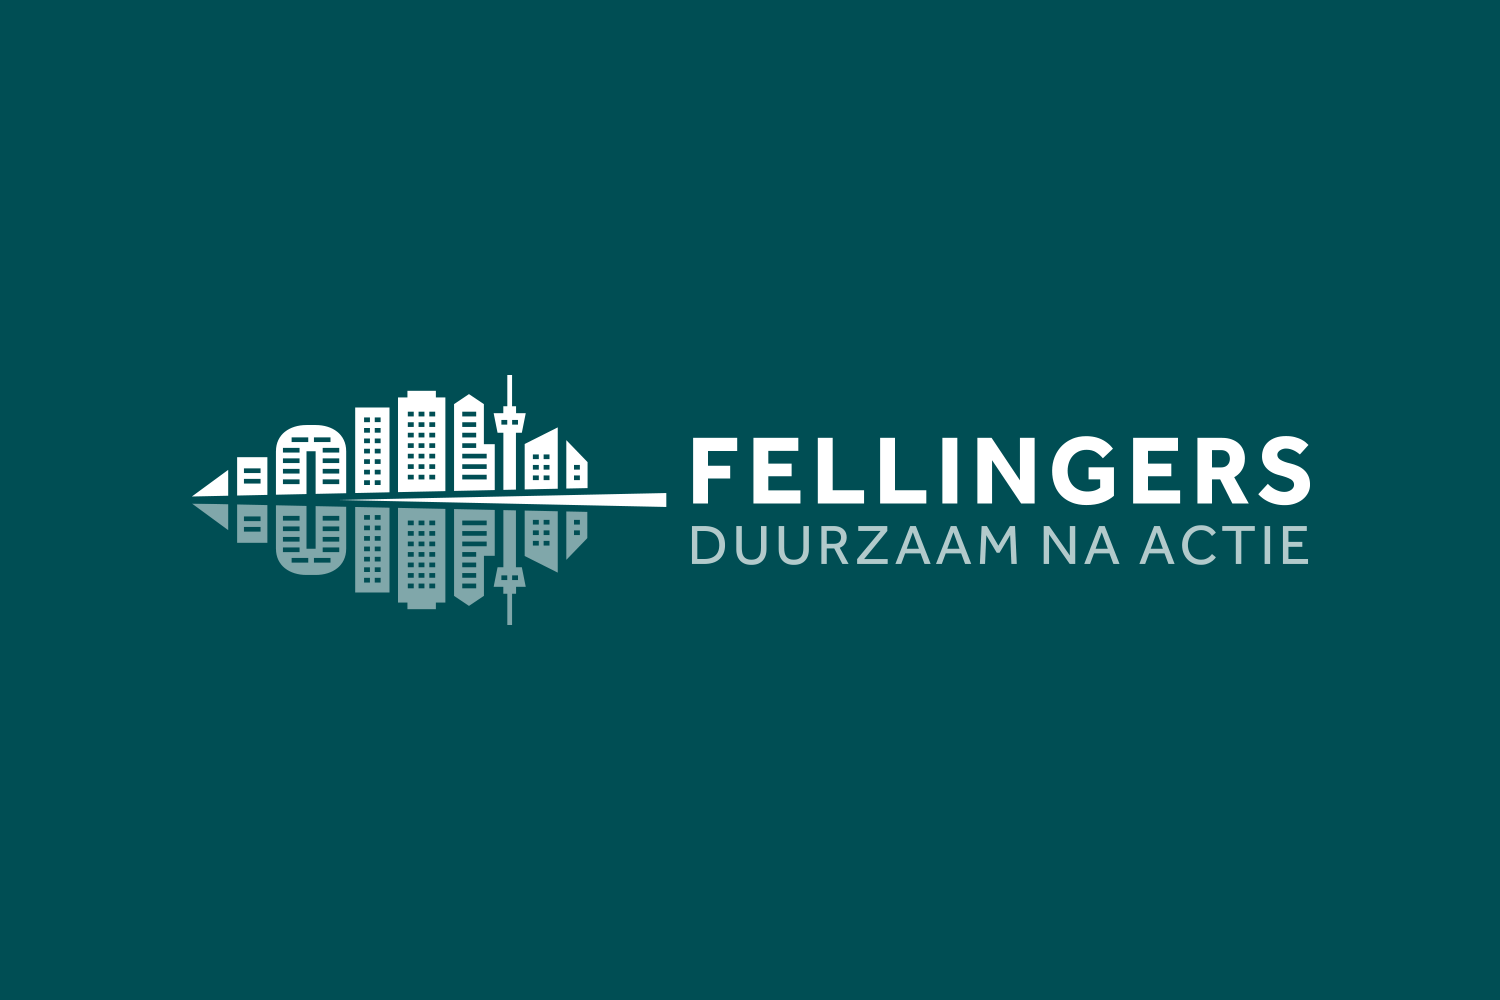 Arthur Fellinger is an interim manager specializing in sustainability and corporate social responsibility. Arthur wanted his logo to show that he's based in Rotterdam, so I included some of Rotterdam's landmarks.